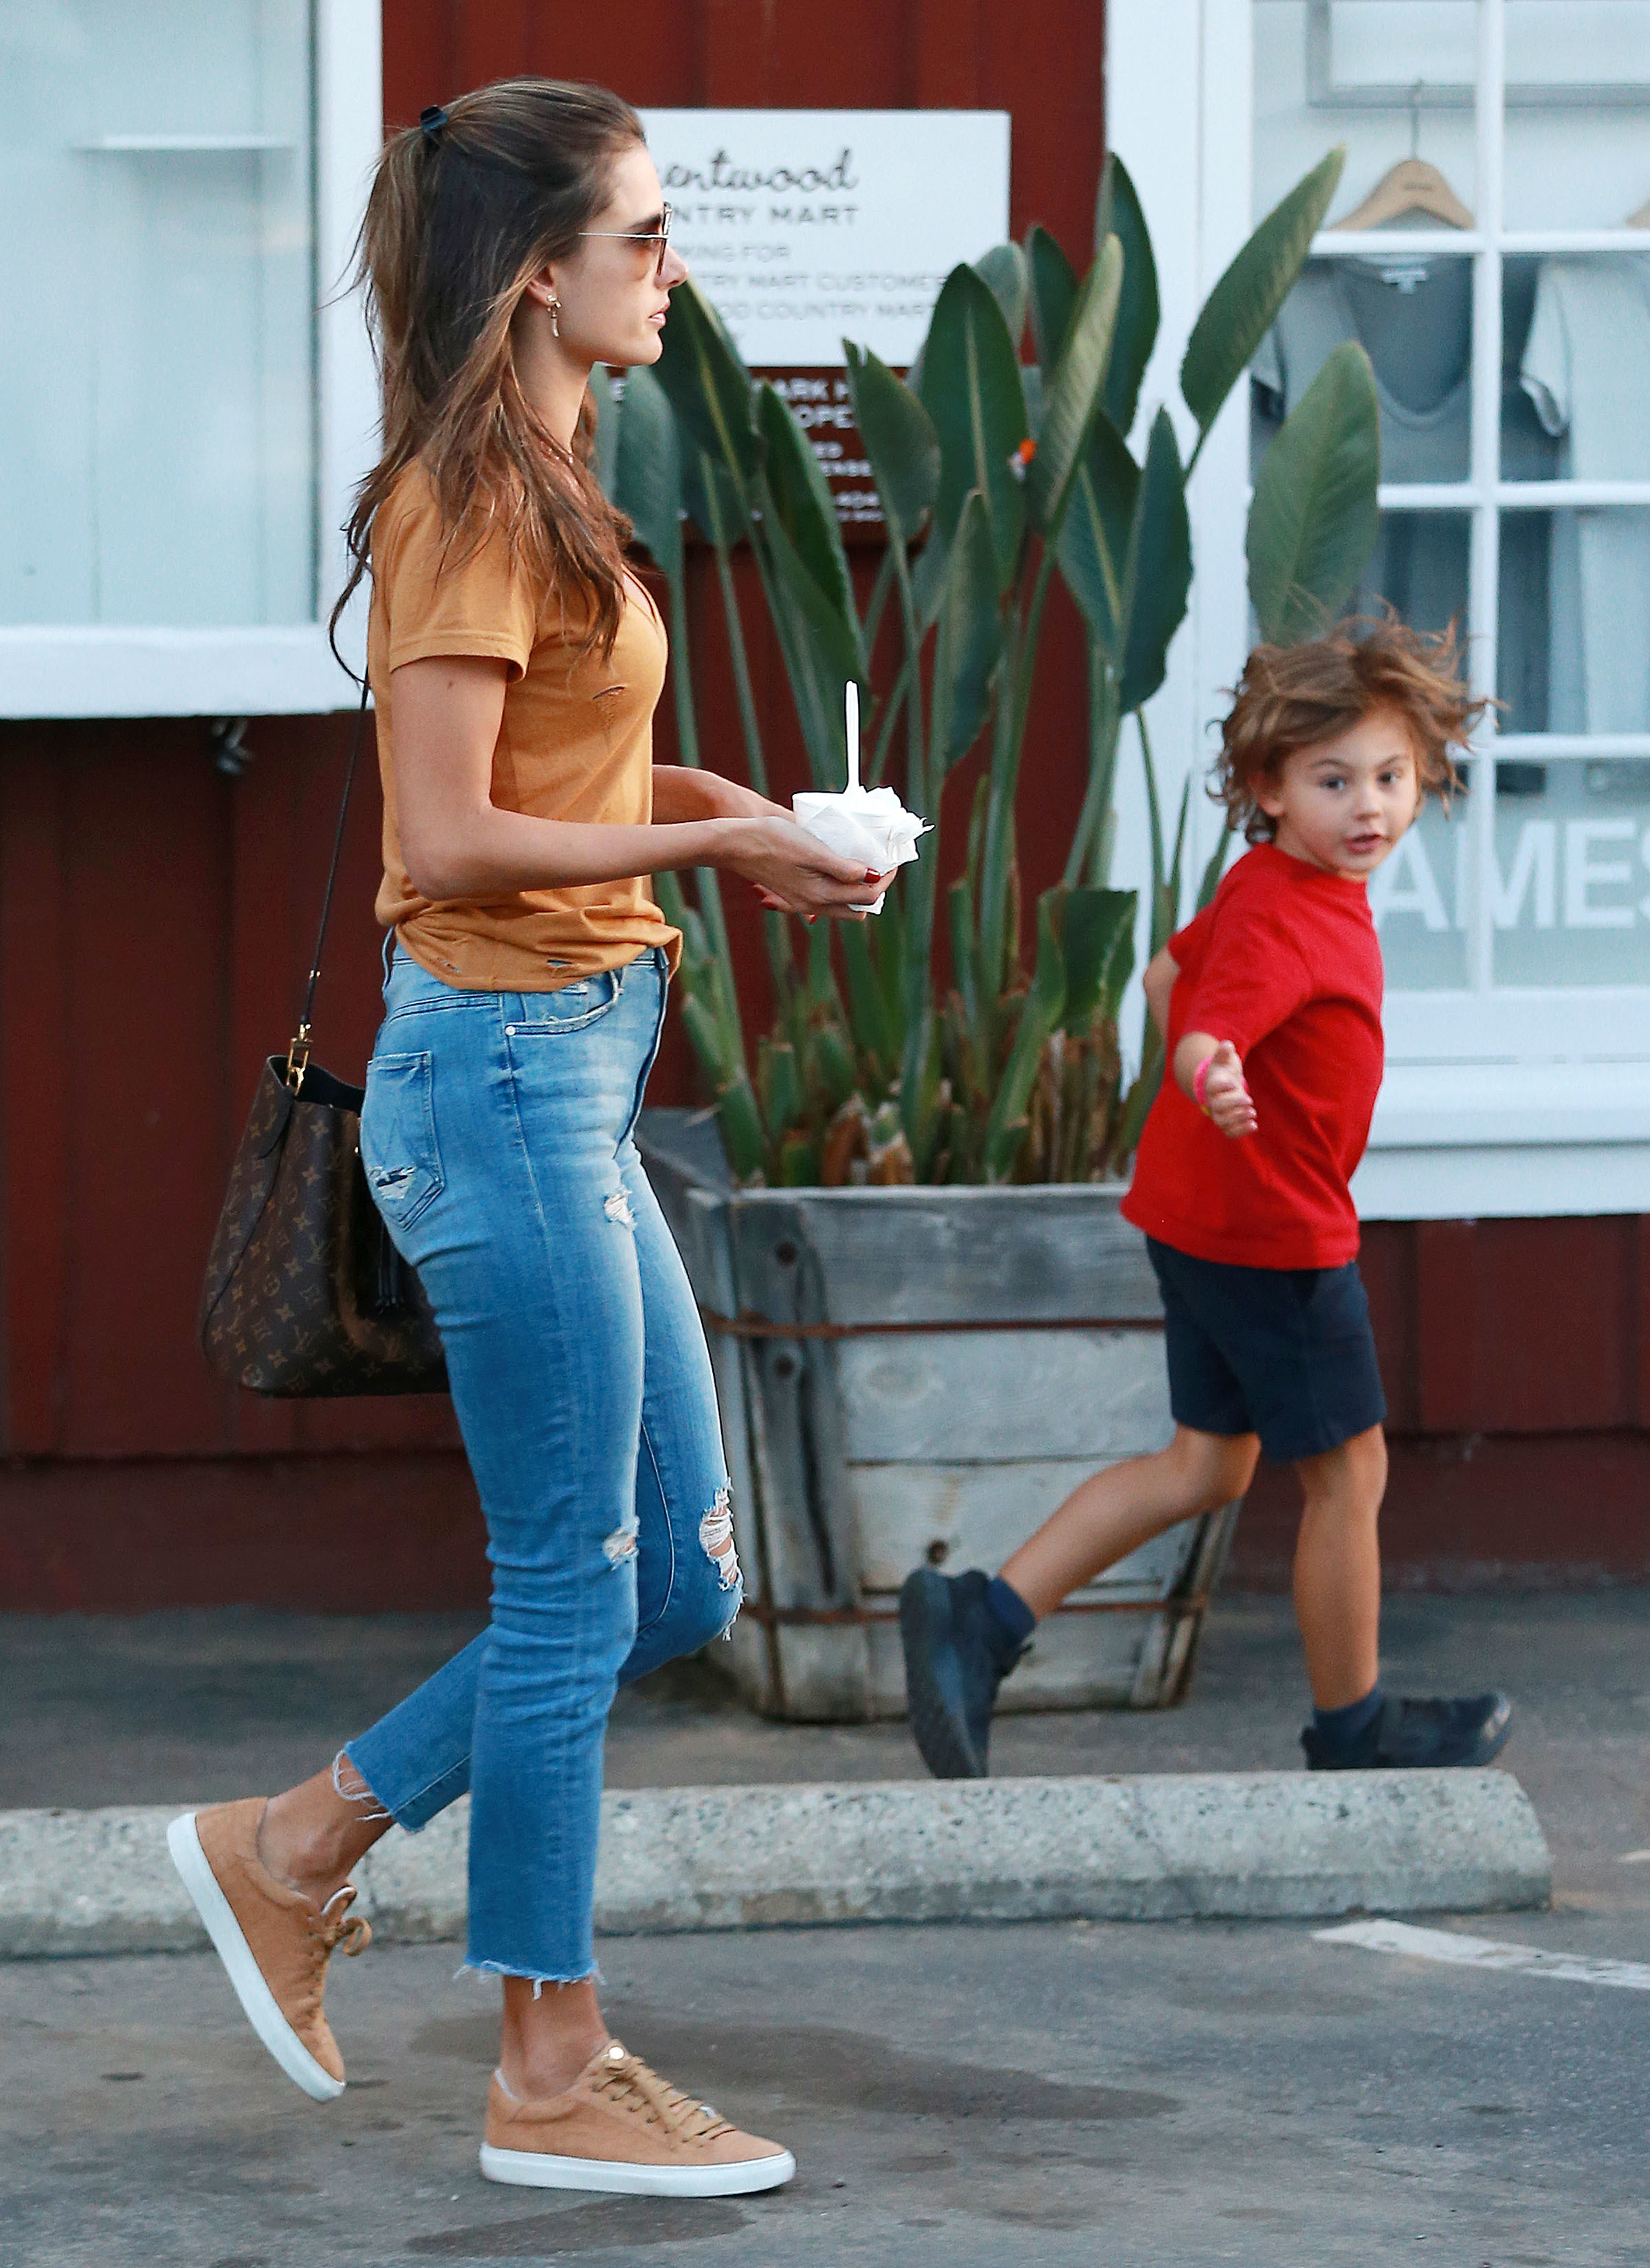 Alessandra Ambrosio and her son, Noah Mazur, visit the Brentwood Country Mart in Los Angeles on Jan. 30, 2018.